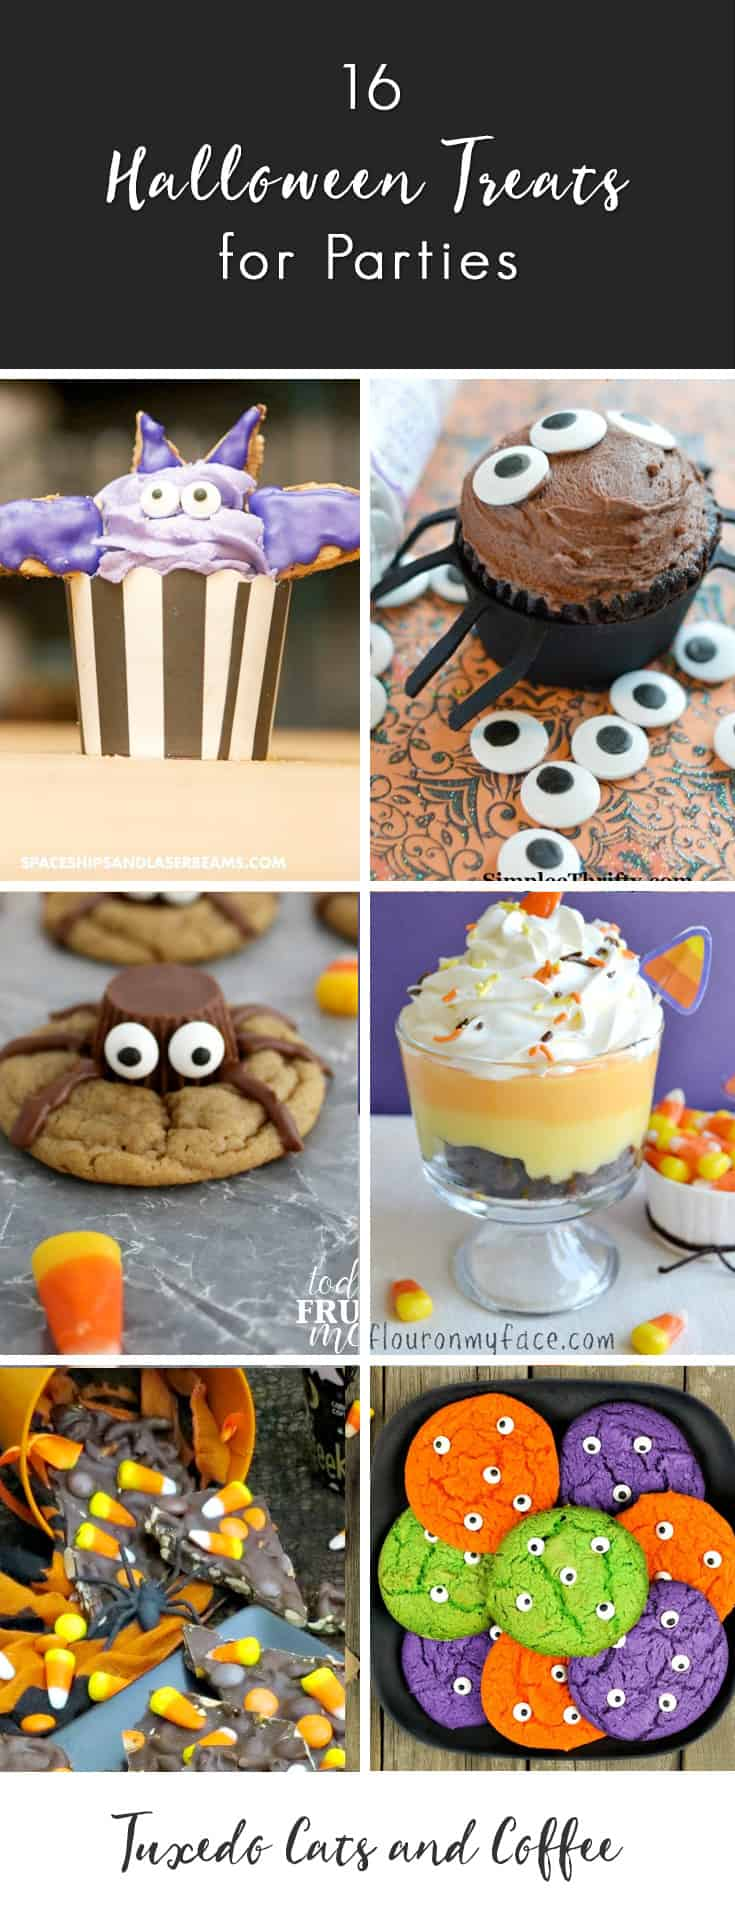 These Halloween desserts and recipes are the perfect Halloween treats for your next costume party or Halloween party. You could also serve Halloween treats instead of candy or at a post-trick-or-treating celebration. Whatever the situation, these delicious Halloween desserts are a spooky and festive addition to your scary night!